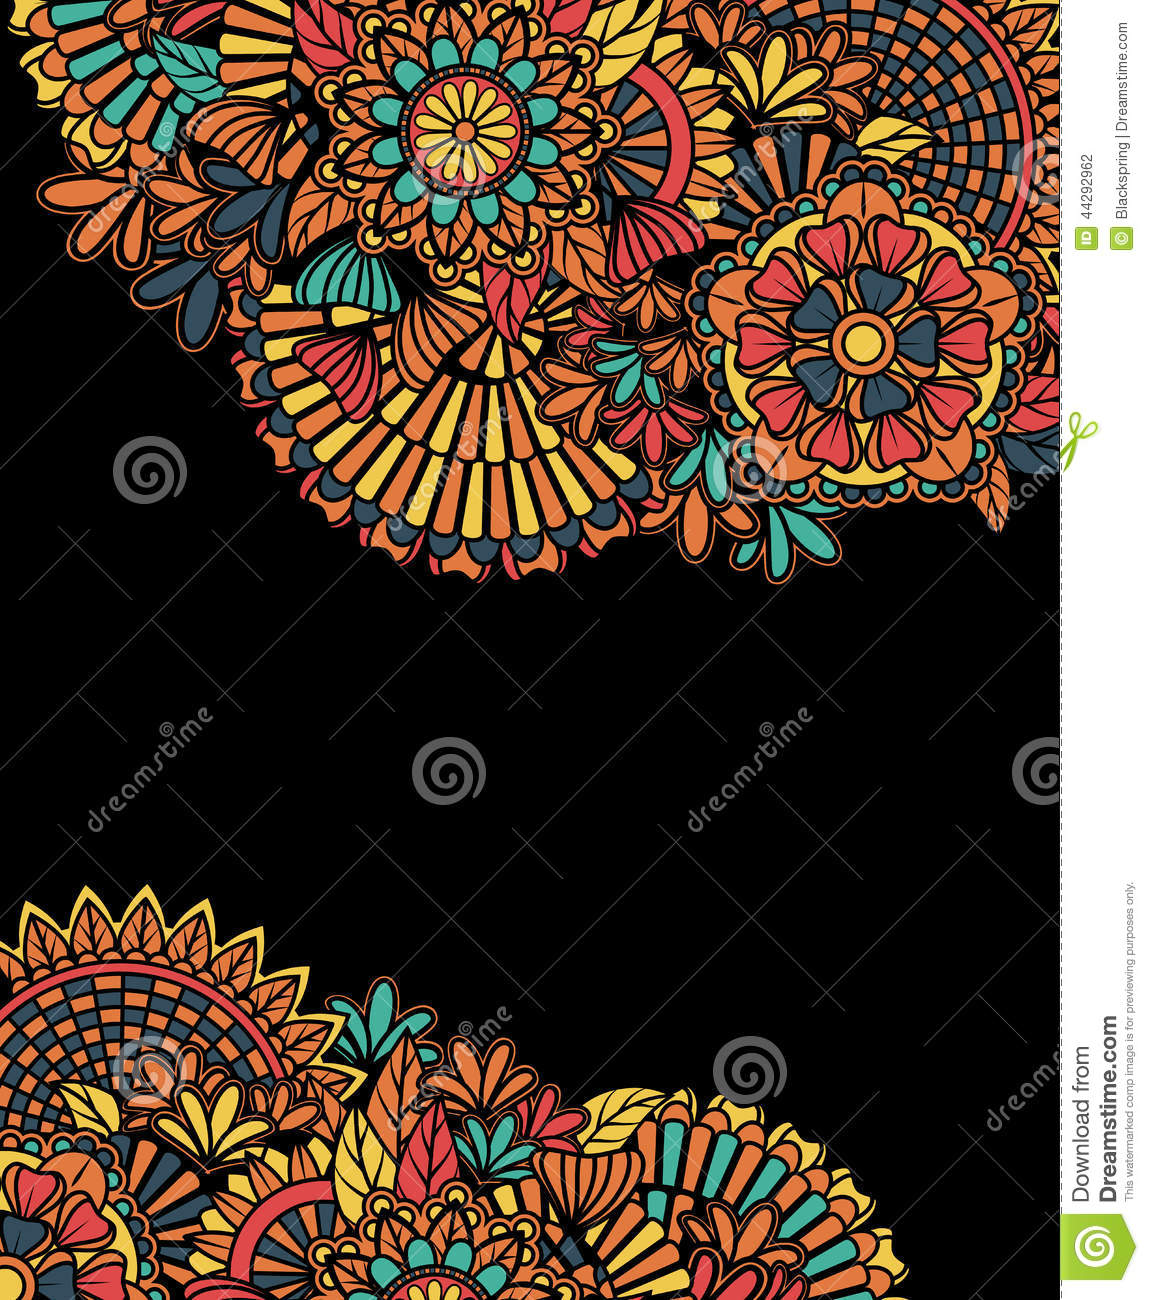 Colorful Zentangle Background Stock Vector - Image: 44292962